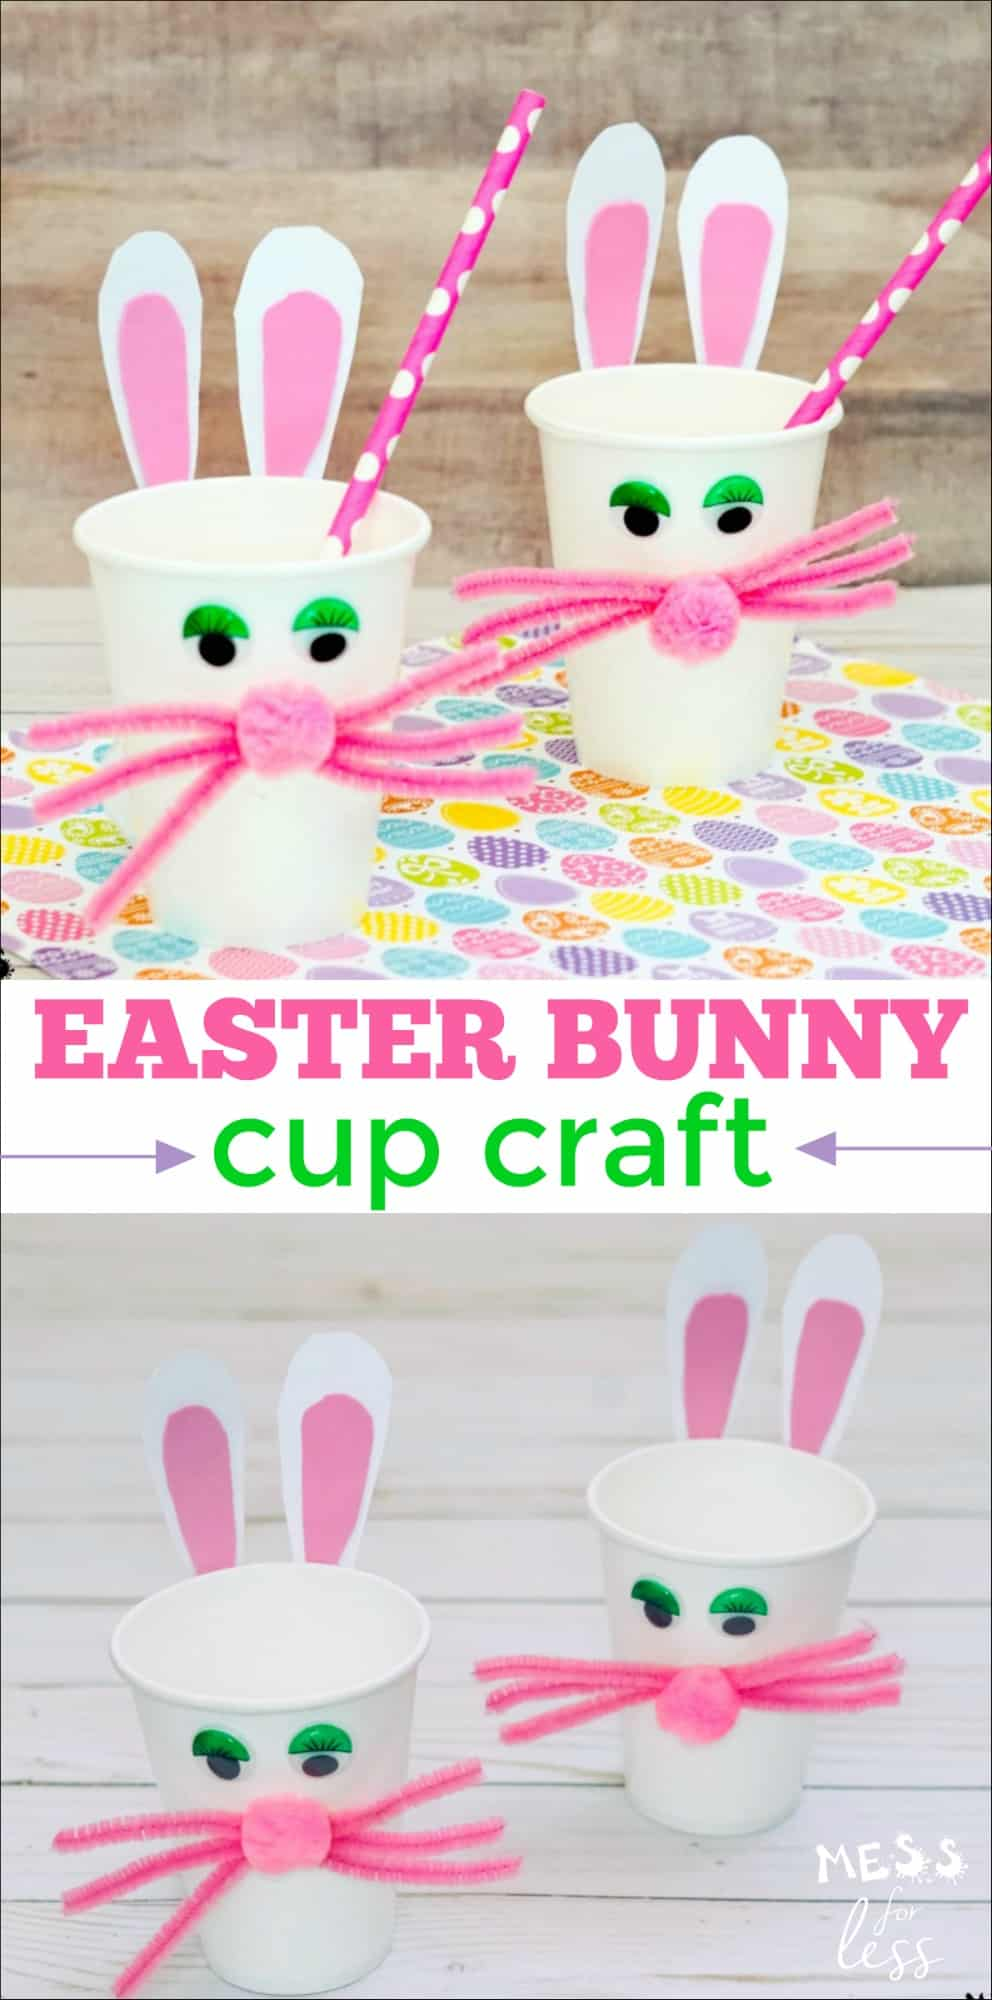 There is no better way to spend an afternoon than crafting with kids. This Easter Bunny Cup Craft is perfect to make with children because it is fairly simple and straightforward. Plus at the end, you are left with an adorable decoration that can be used as a treat holder.